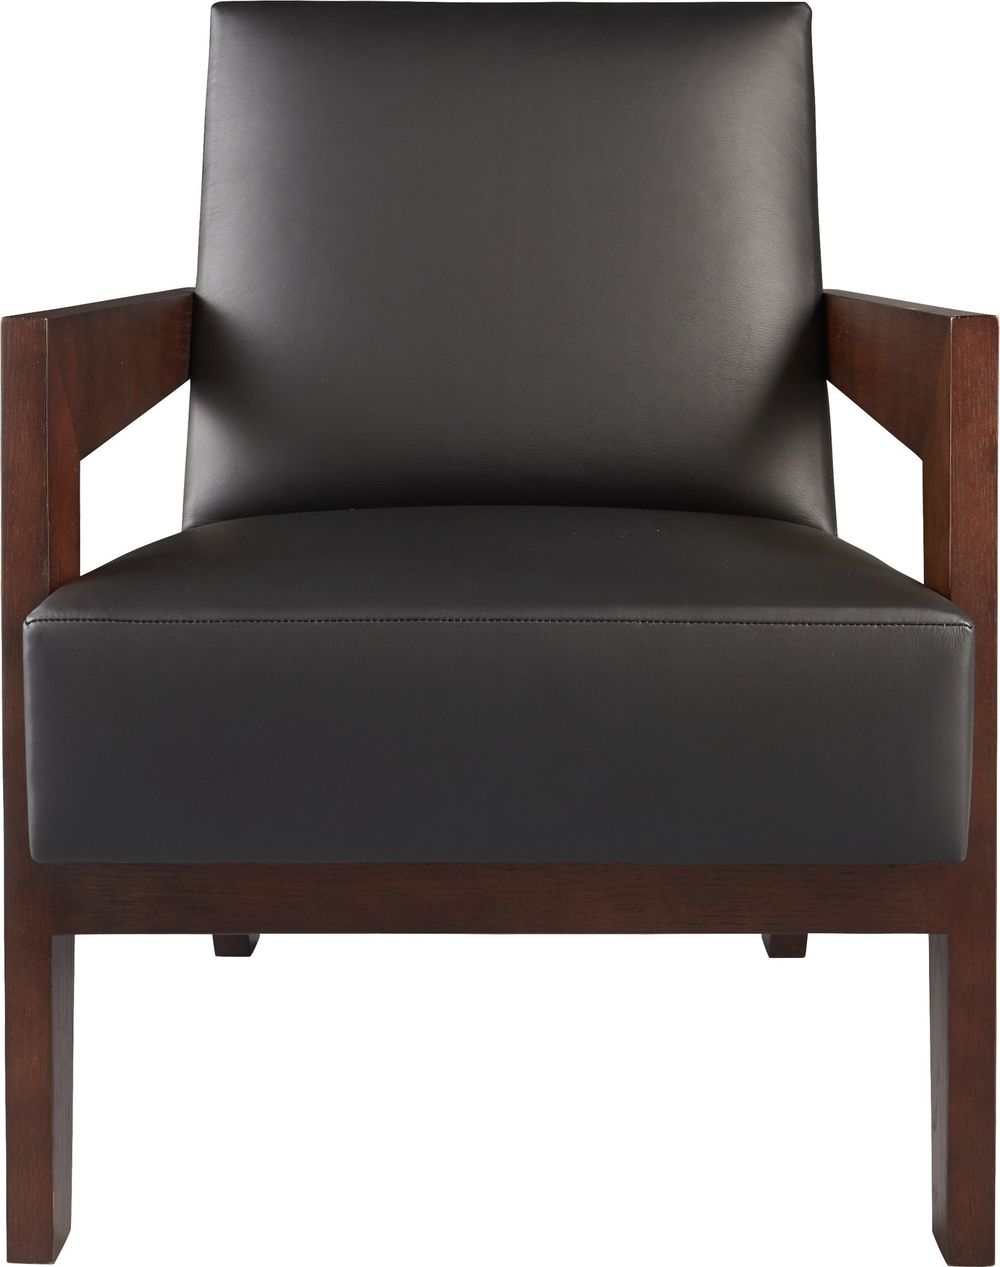 Baker Furniture - Continuous Line Lounge Chair